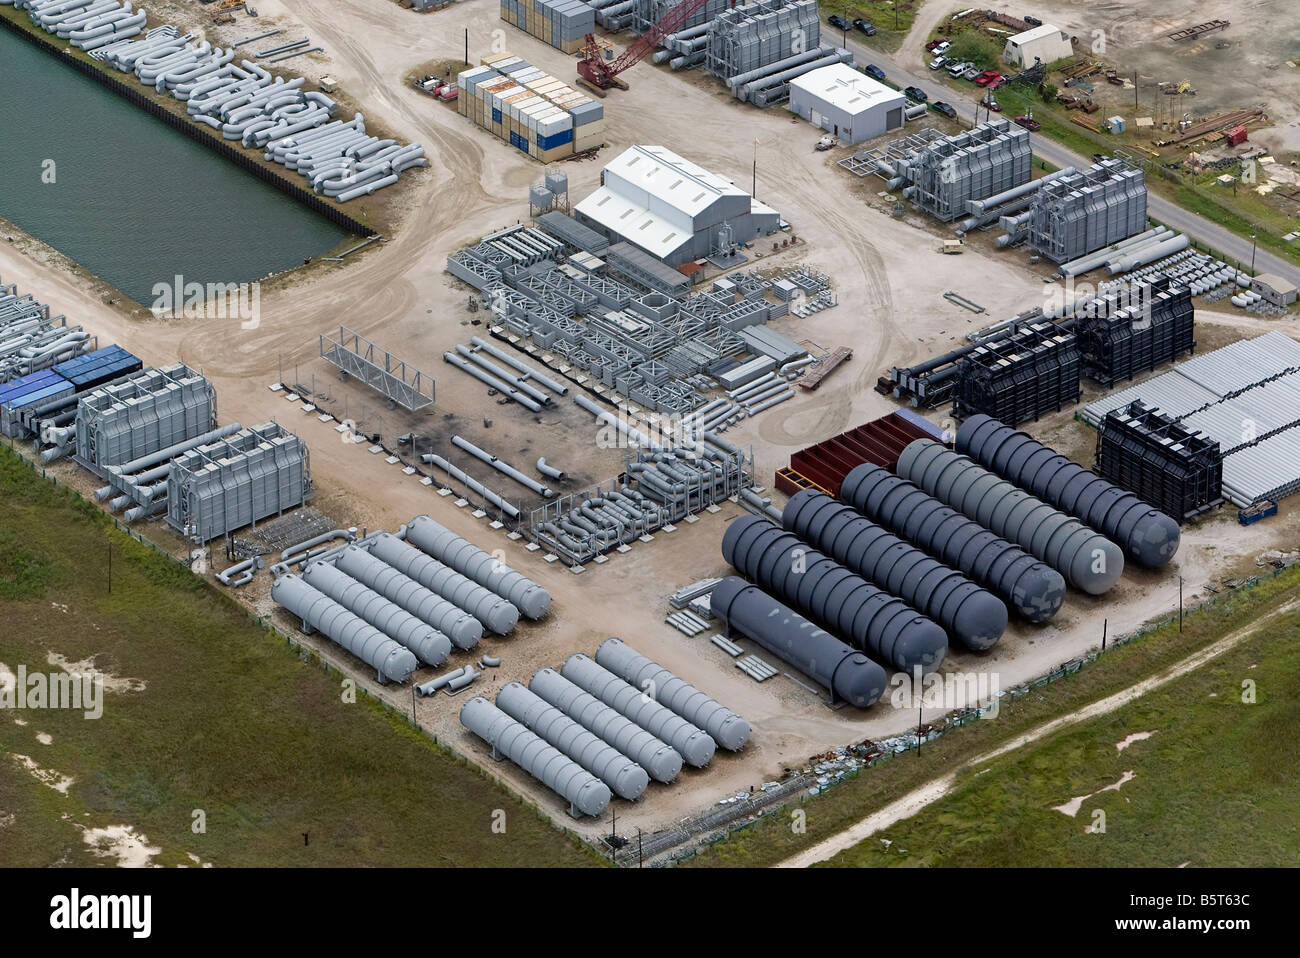 aerial view above construction materials for oil rigs Texas Gulf of Mexico - Stock Image